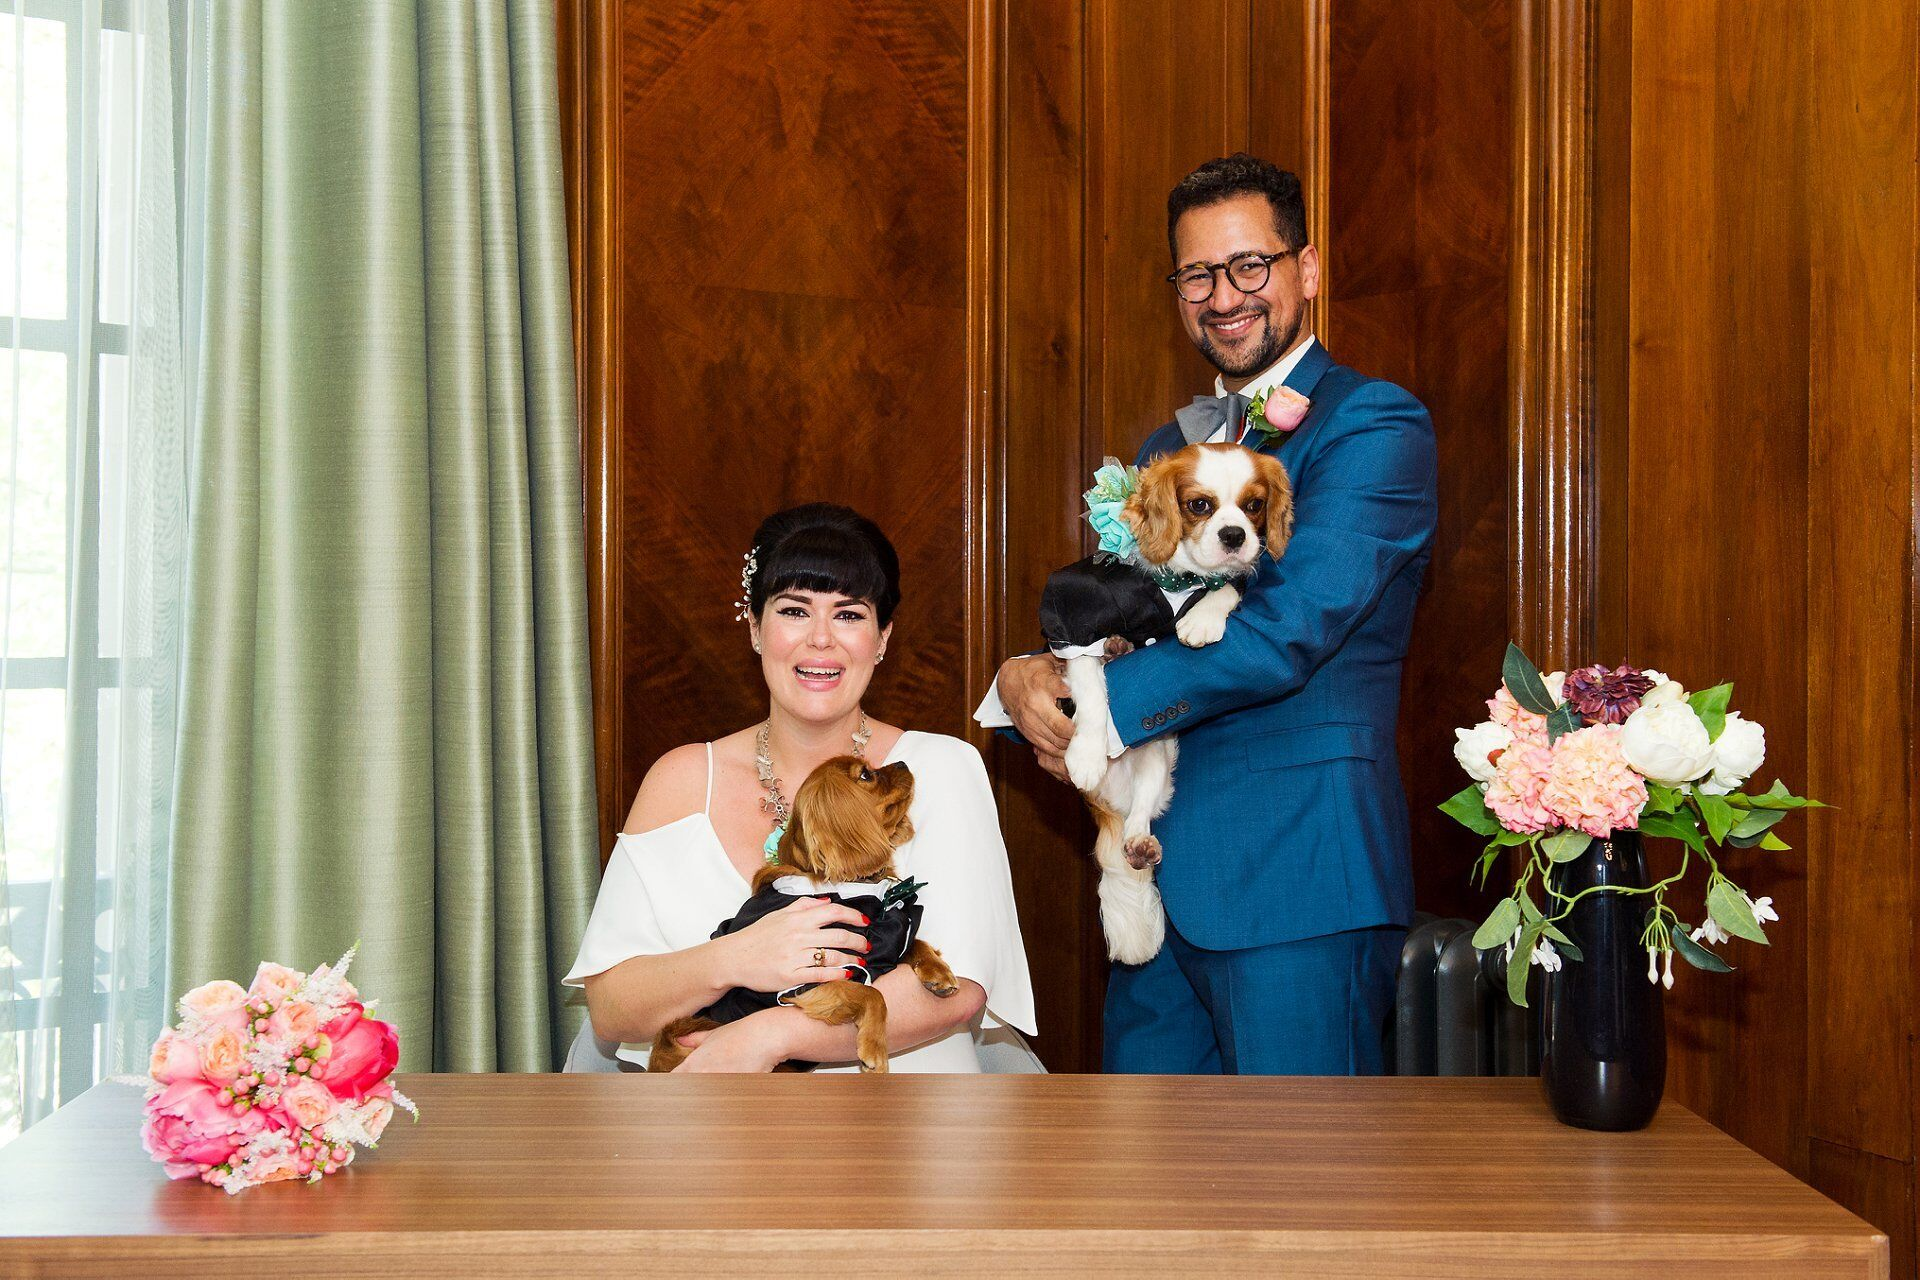 marylebone room wedding photography with bride and groom and their two cavalier king charles spaniel puppy dogs signing the register by old marylebone town hall wedding photographer emma duggan